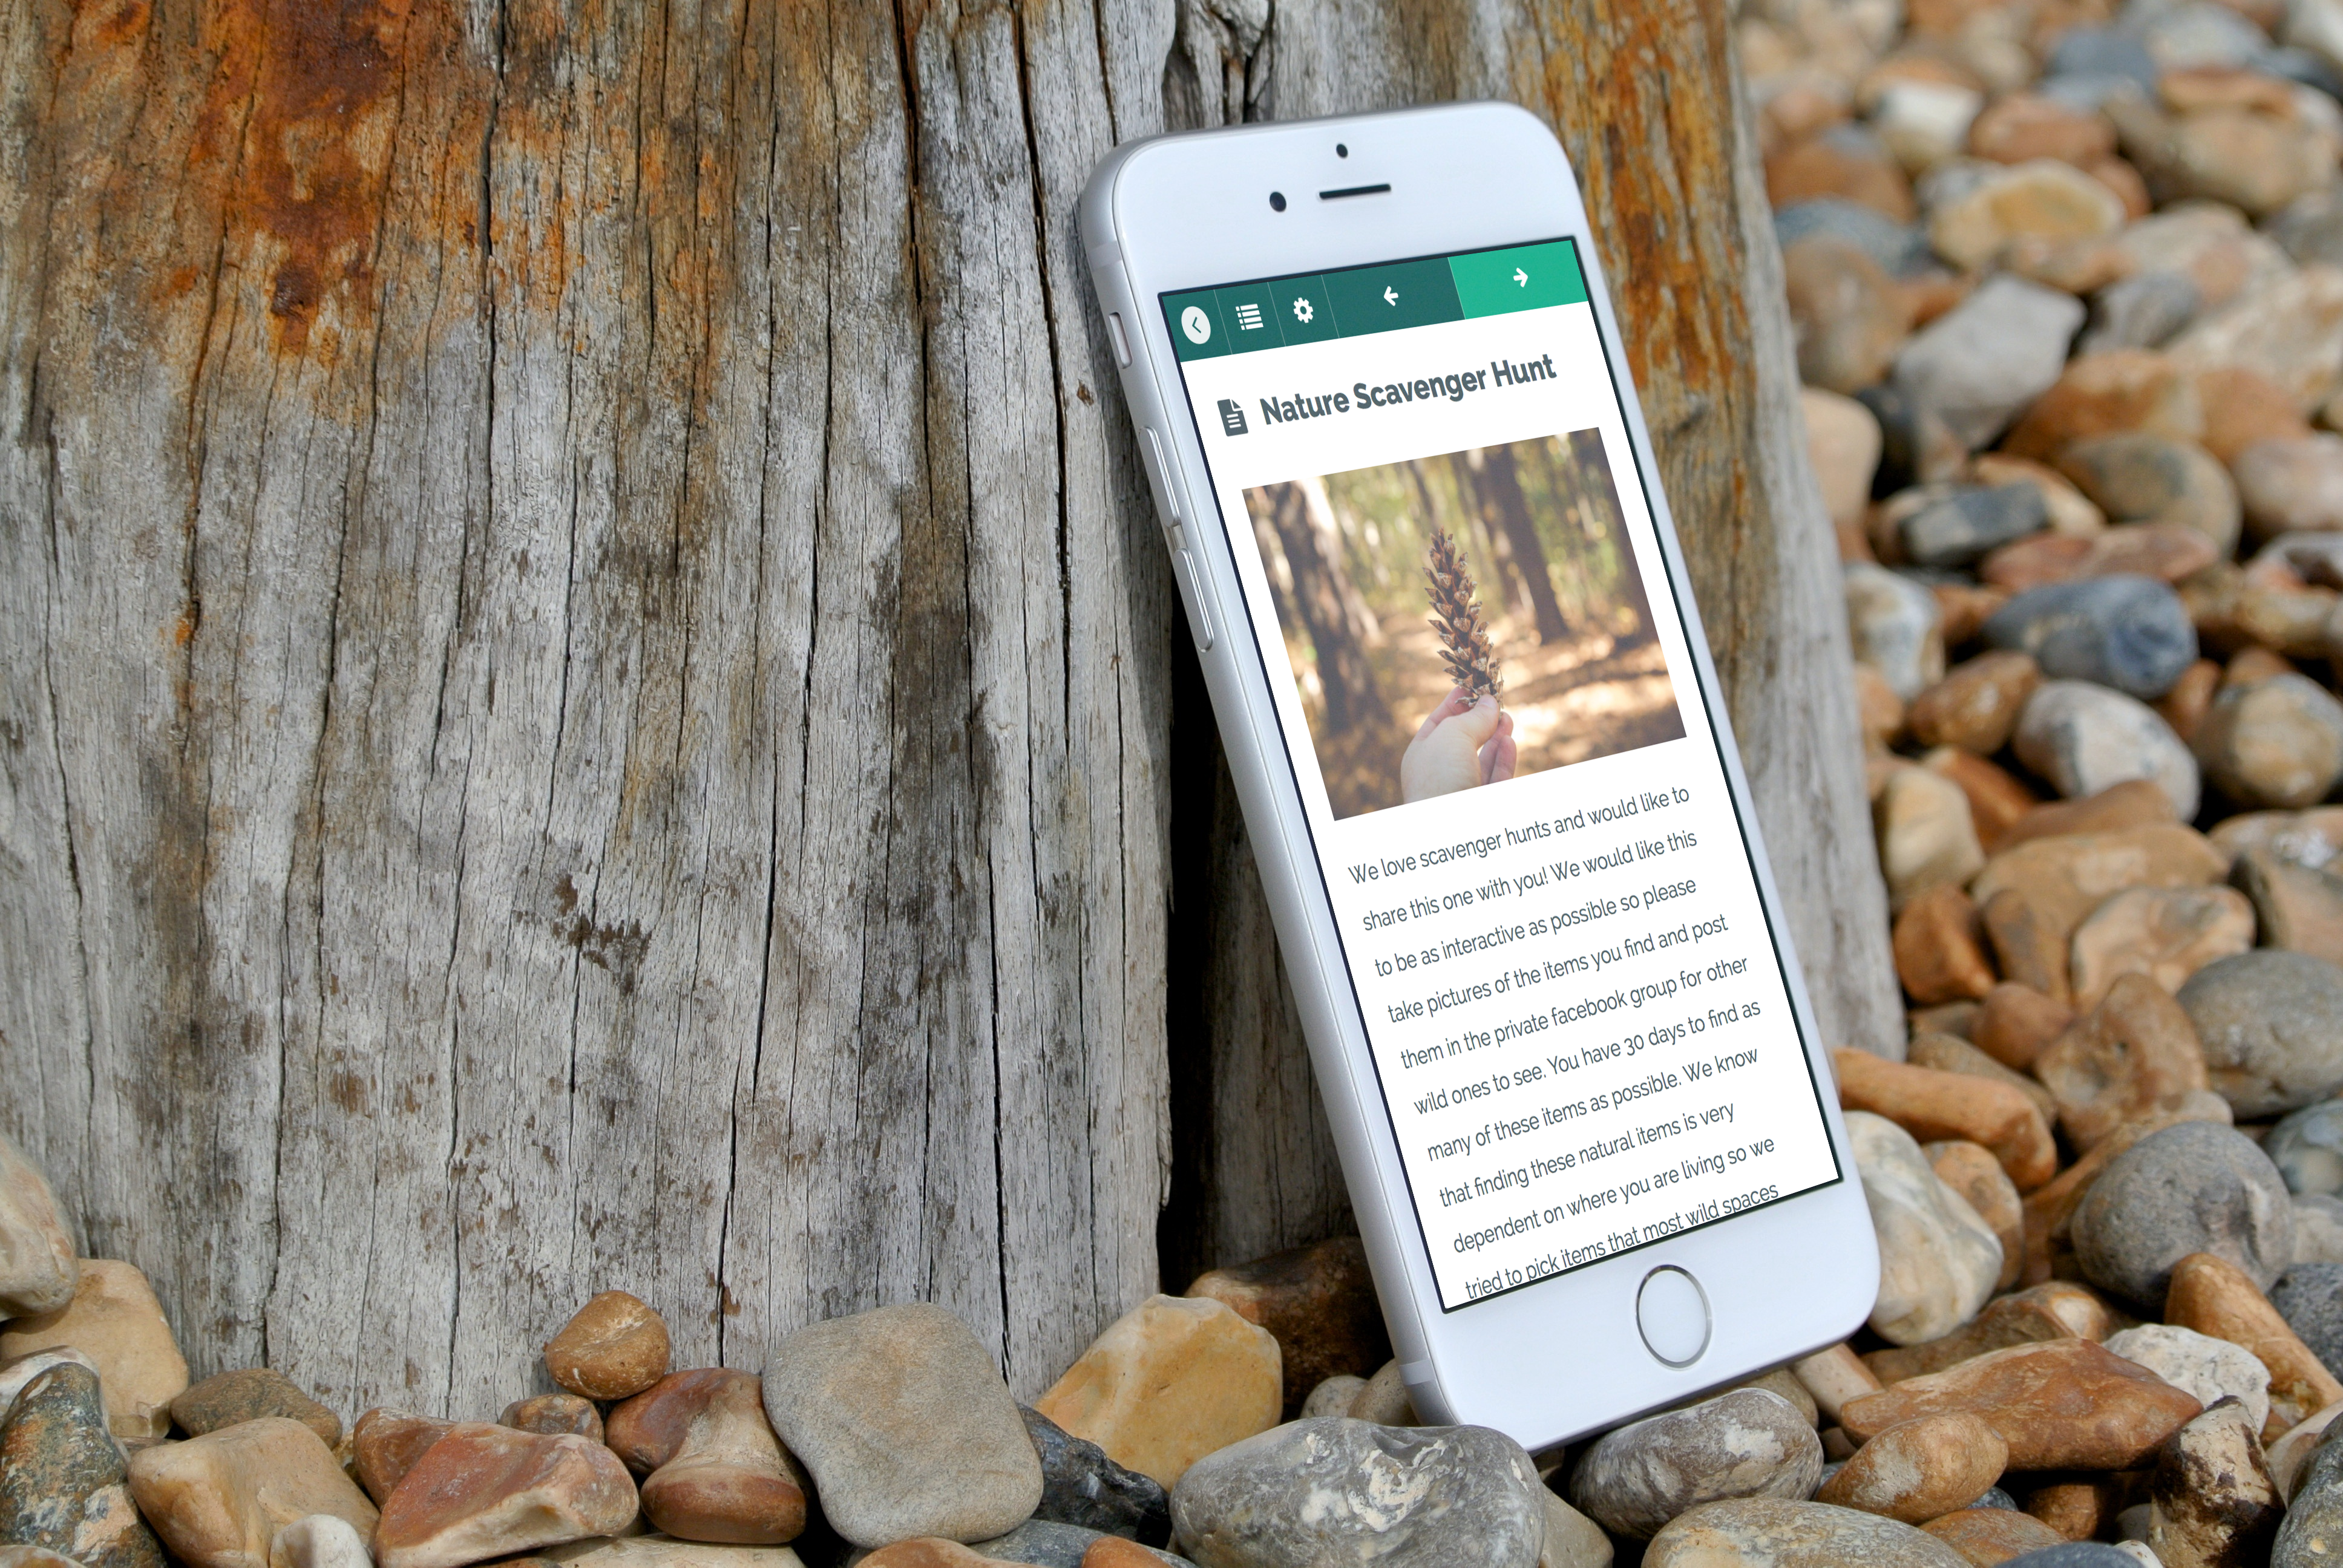 Rewild your life 30 day program we are wildness university have fun with your friends and family with our interactive nature scavenger hunt share your finds with the rewild your life community and see if you can fandeluxe Gallery